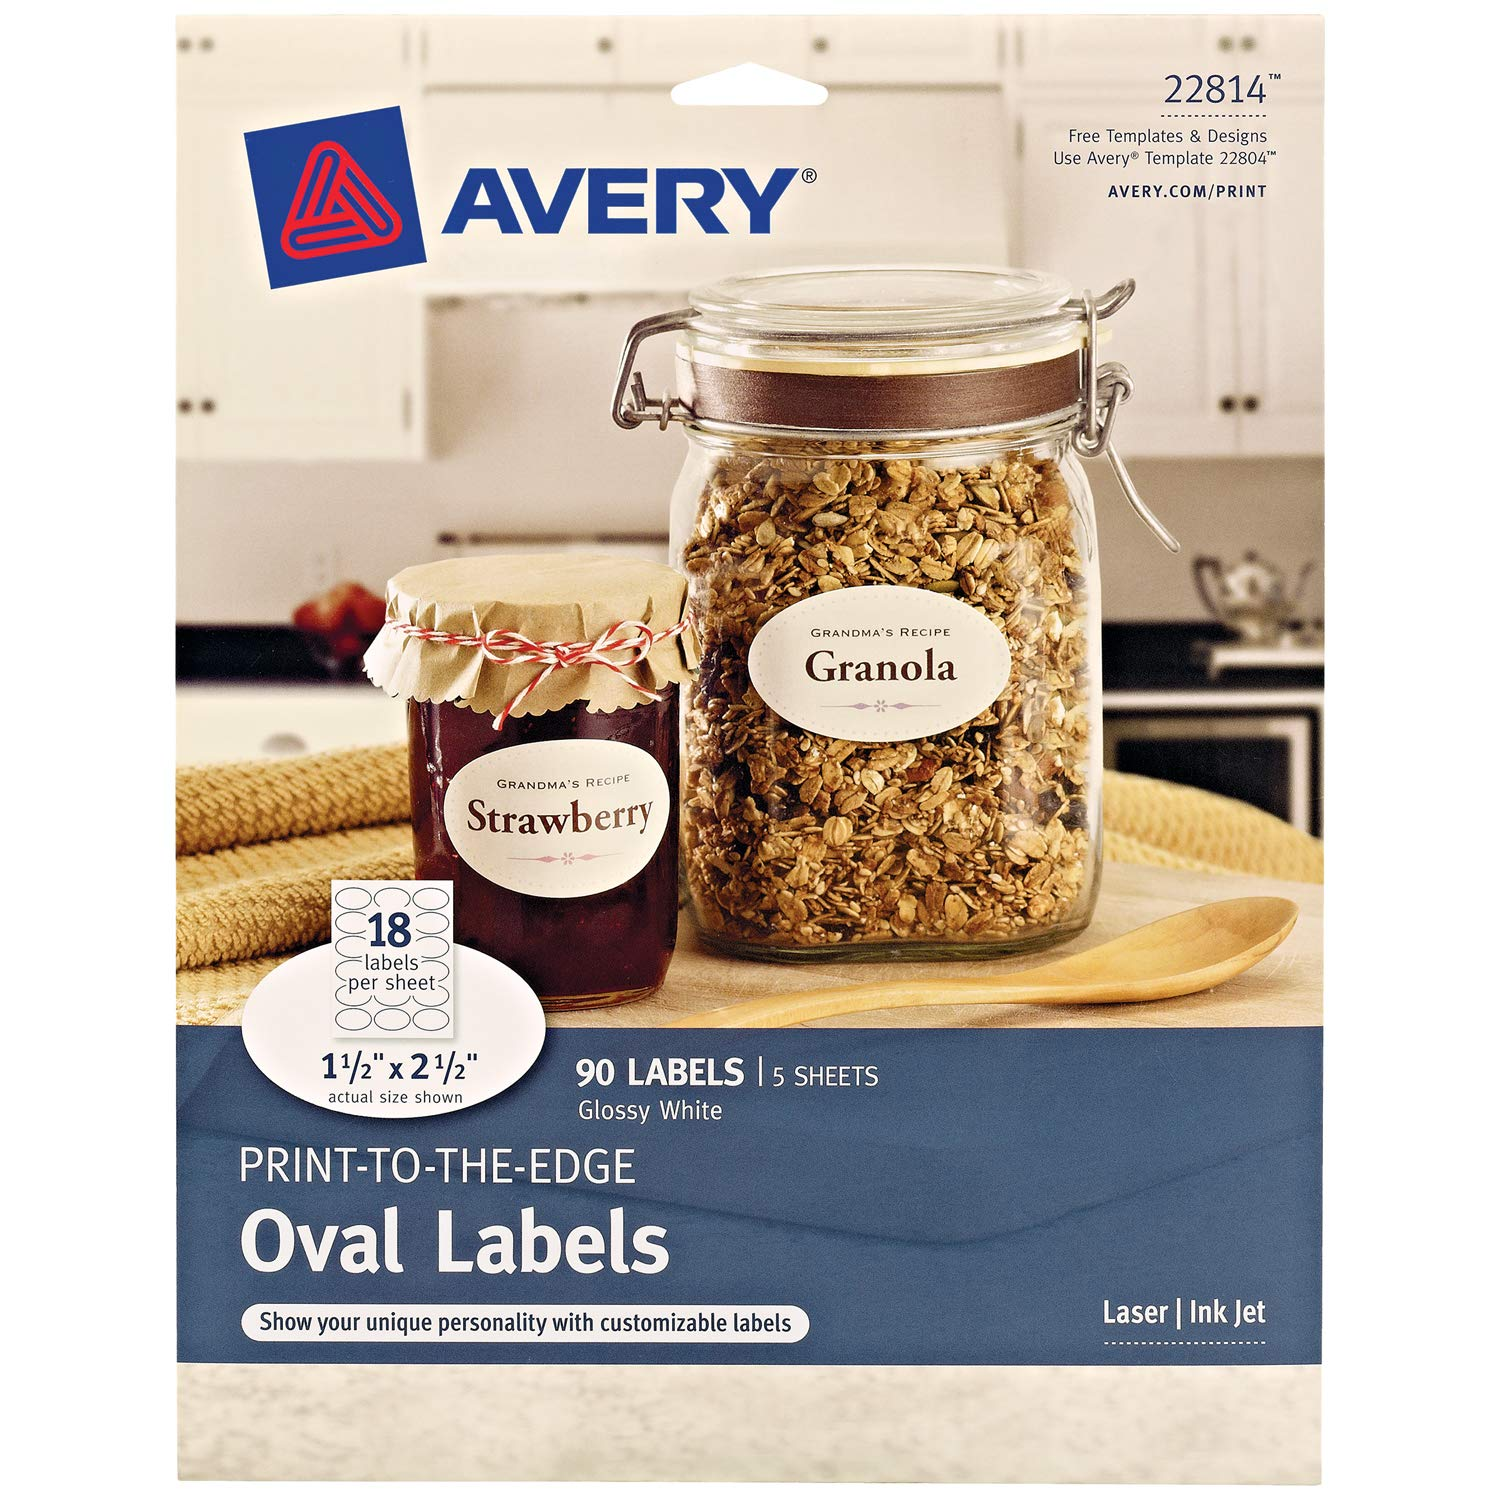 "Avery Oval Labels for Laser & Inkjet Printers, 1.5"" x 2.5"", 90 Glossy White Labels (22814)"